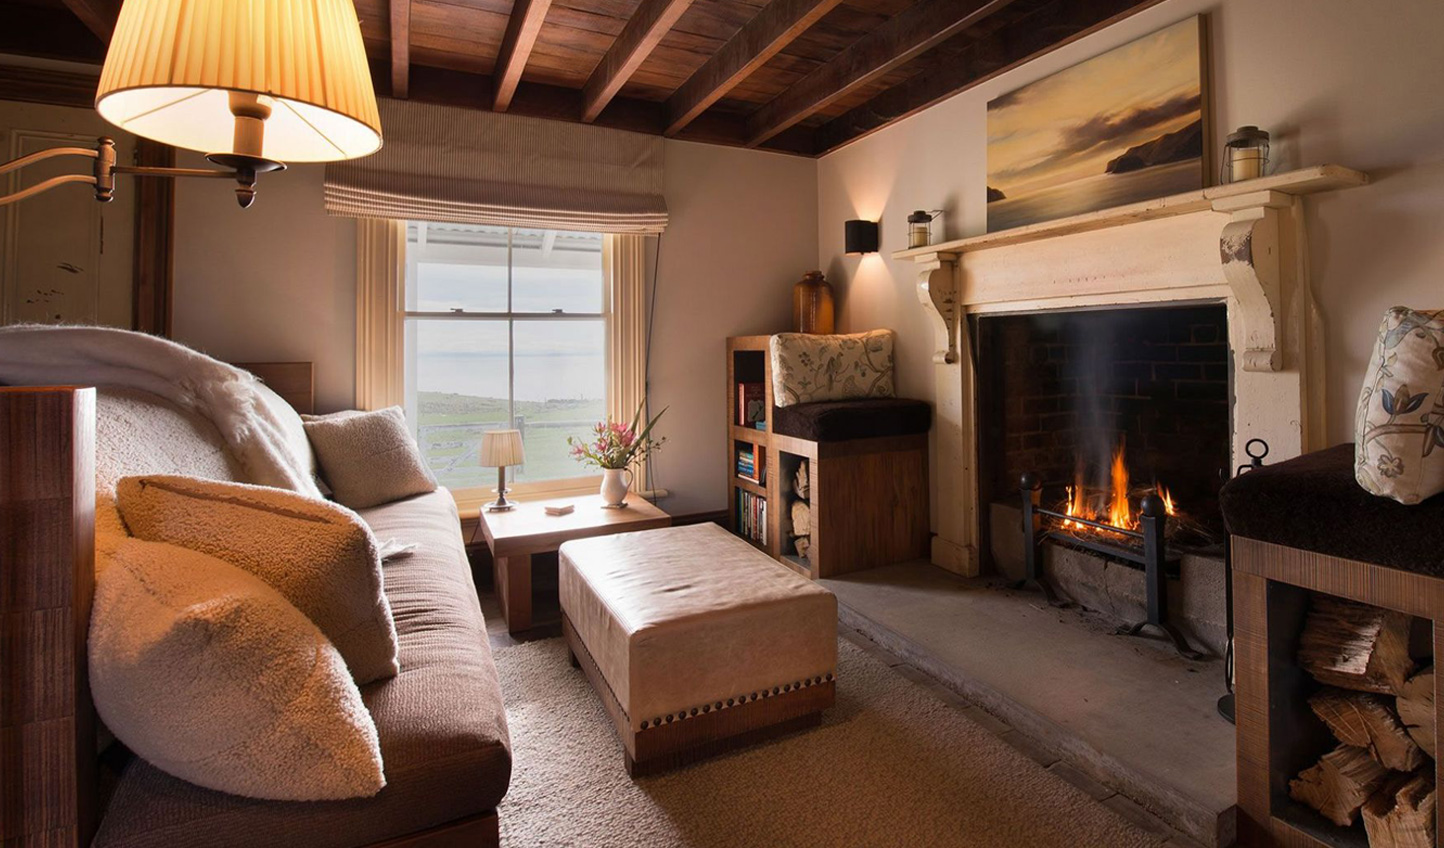 Wrap yourself up in sheepskin by the open fire